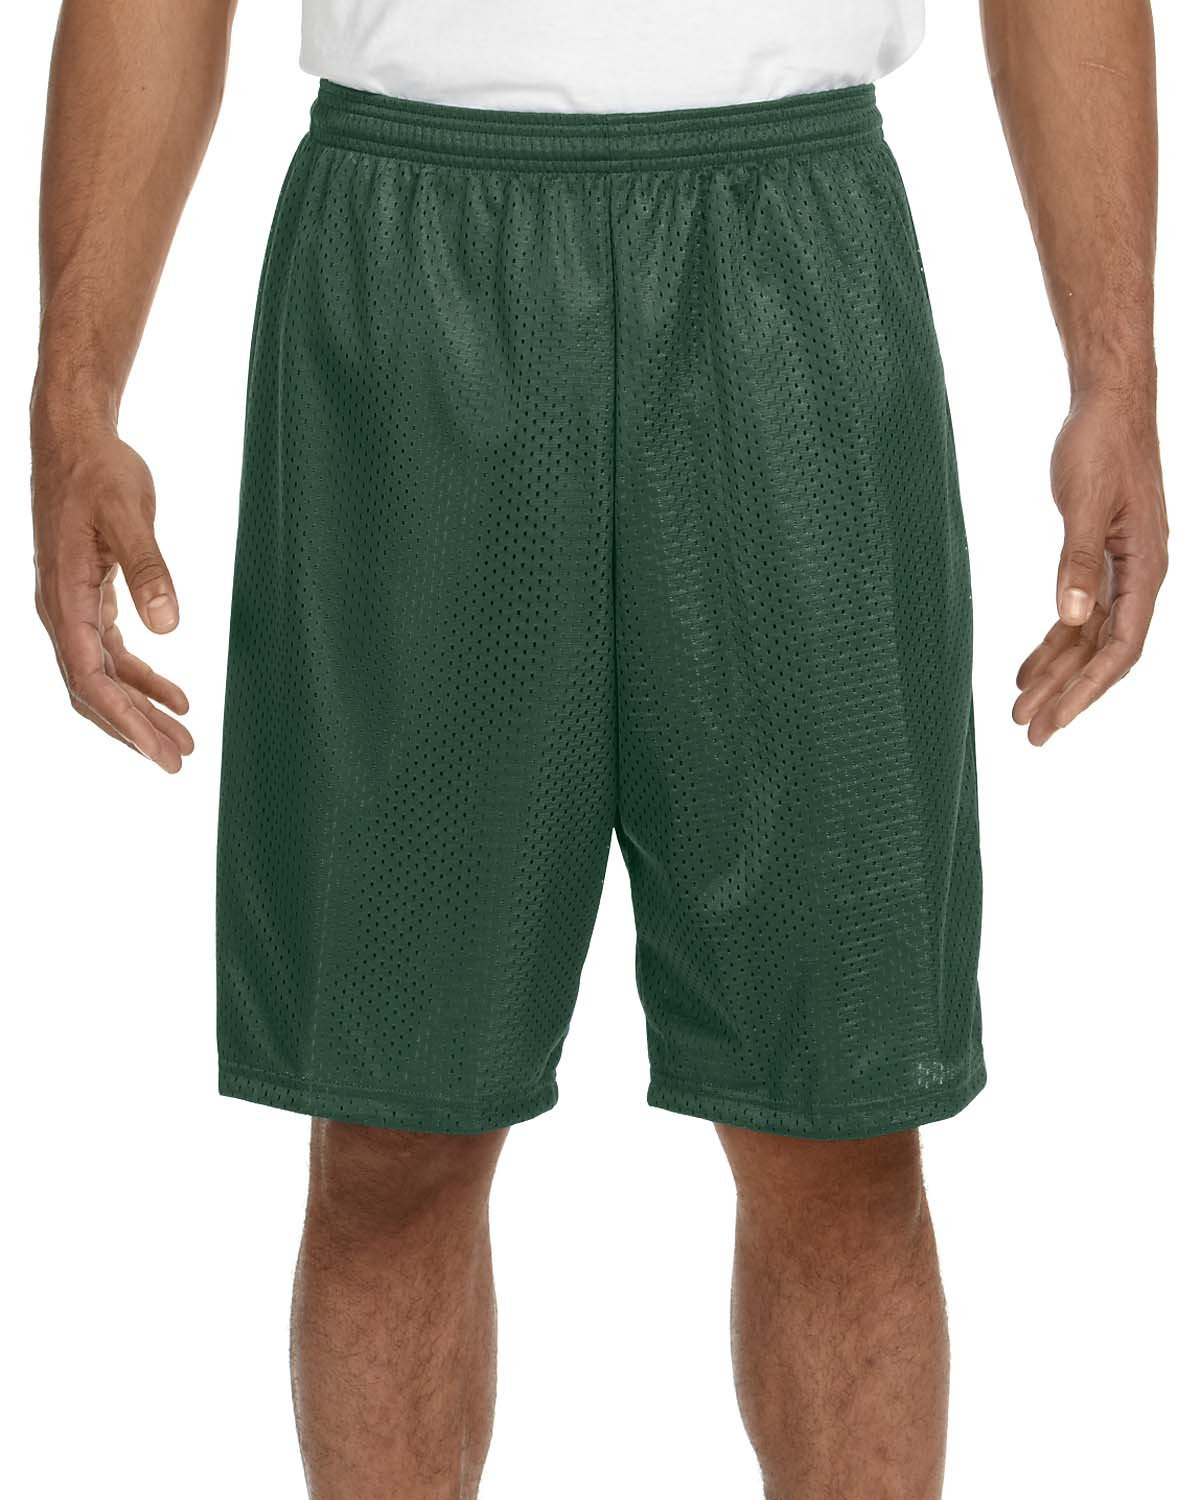 A4 Adult Tricot Mesh Short FOREST GREEN